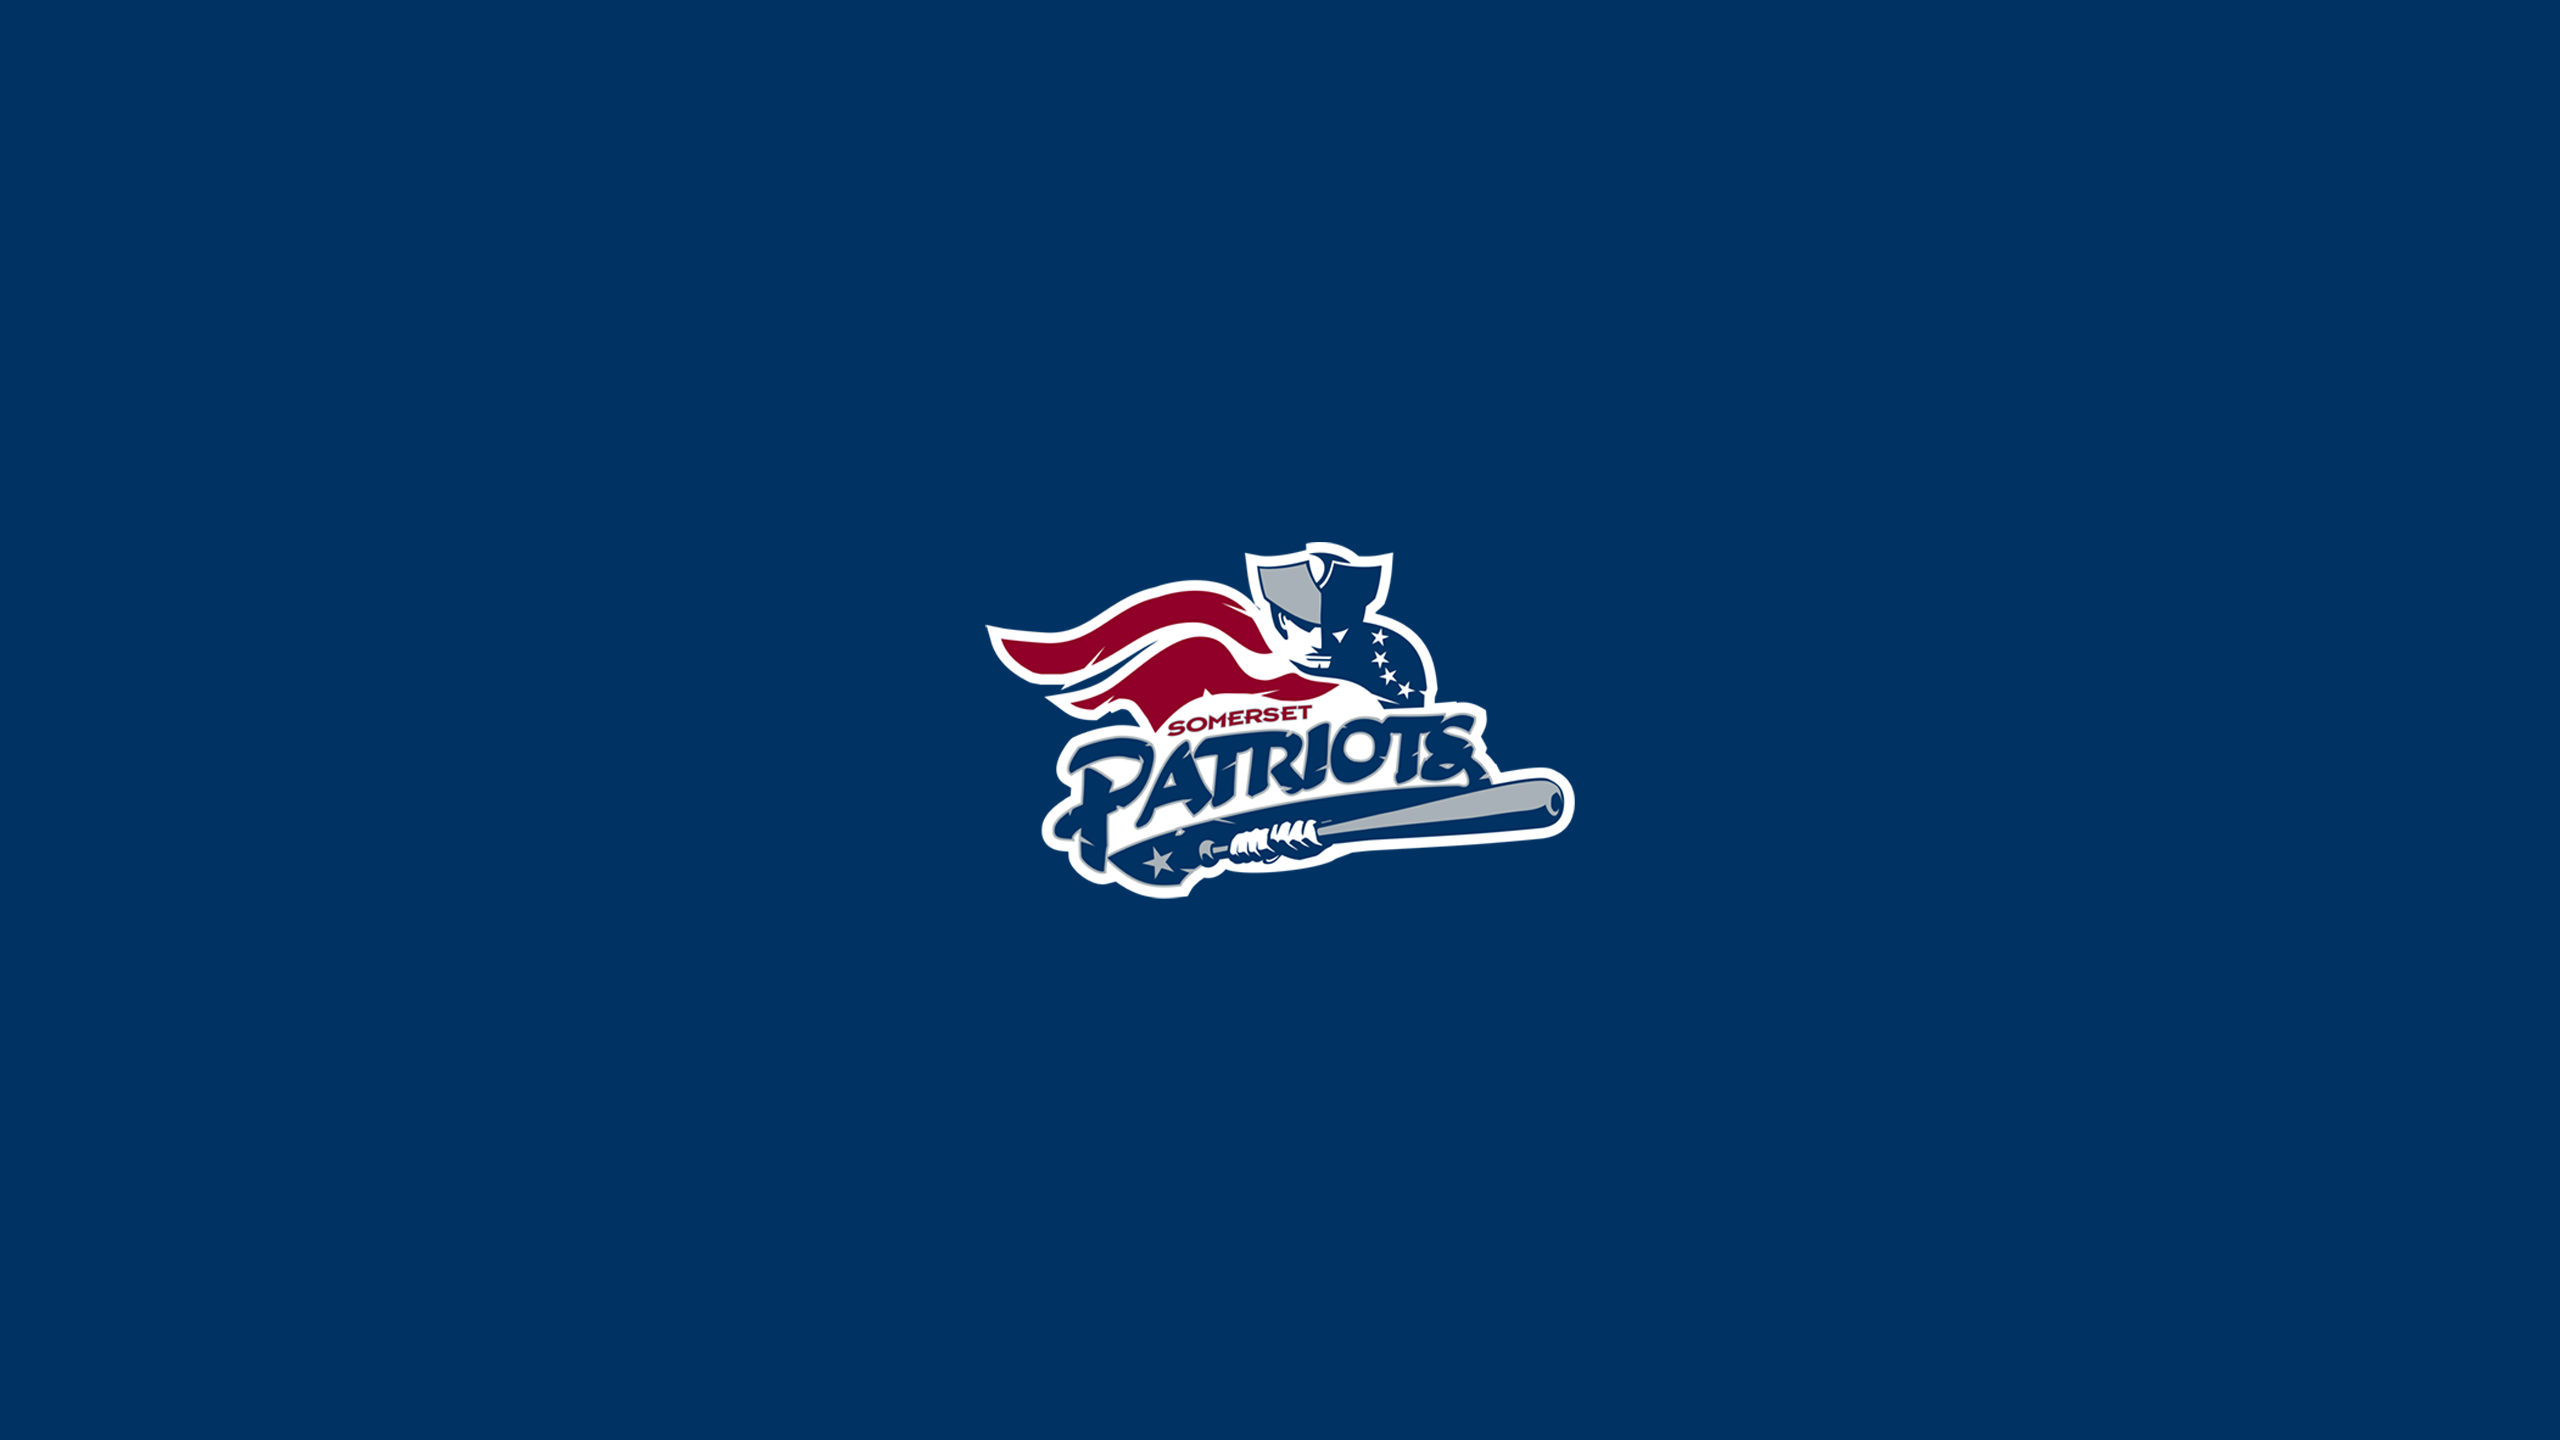 Somerset (NJ) Patriots